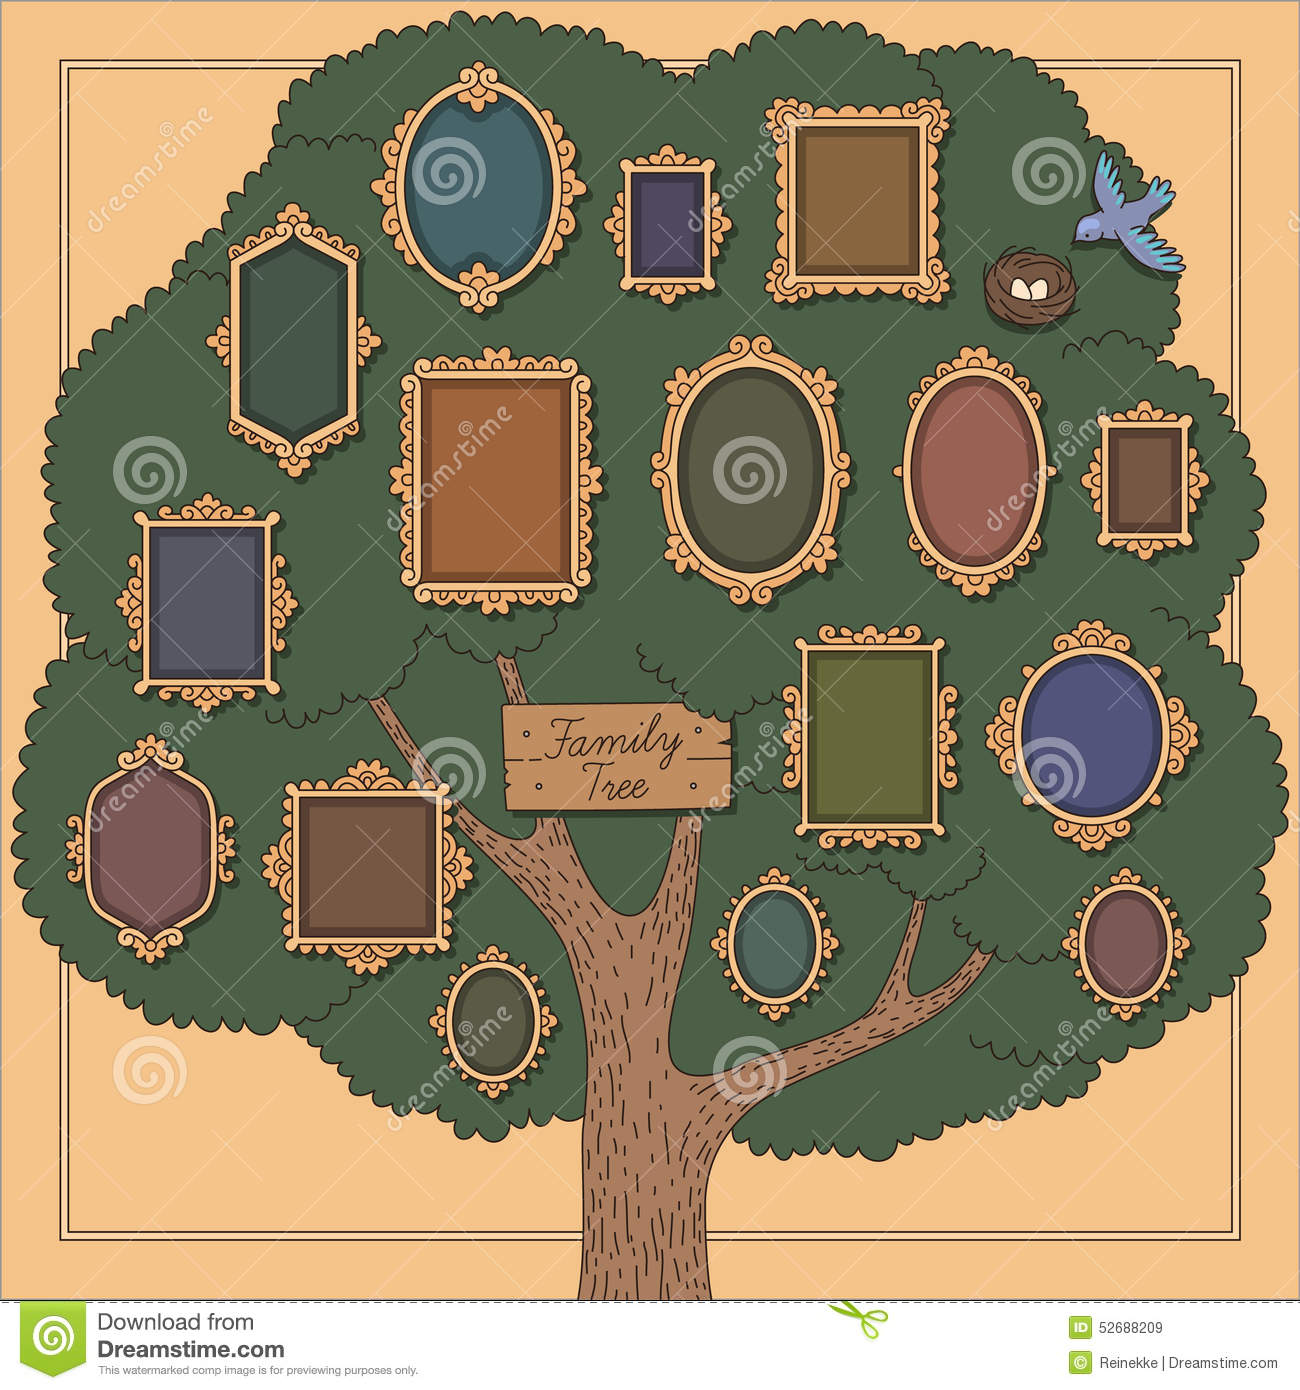 family tree stock vector